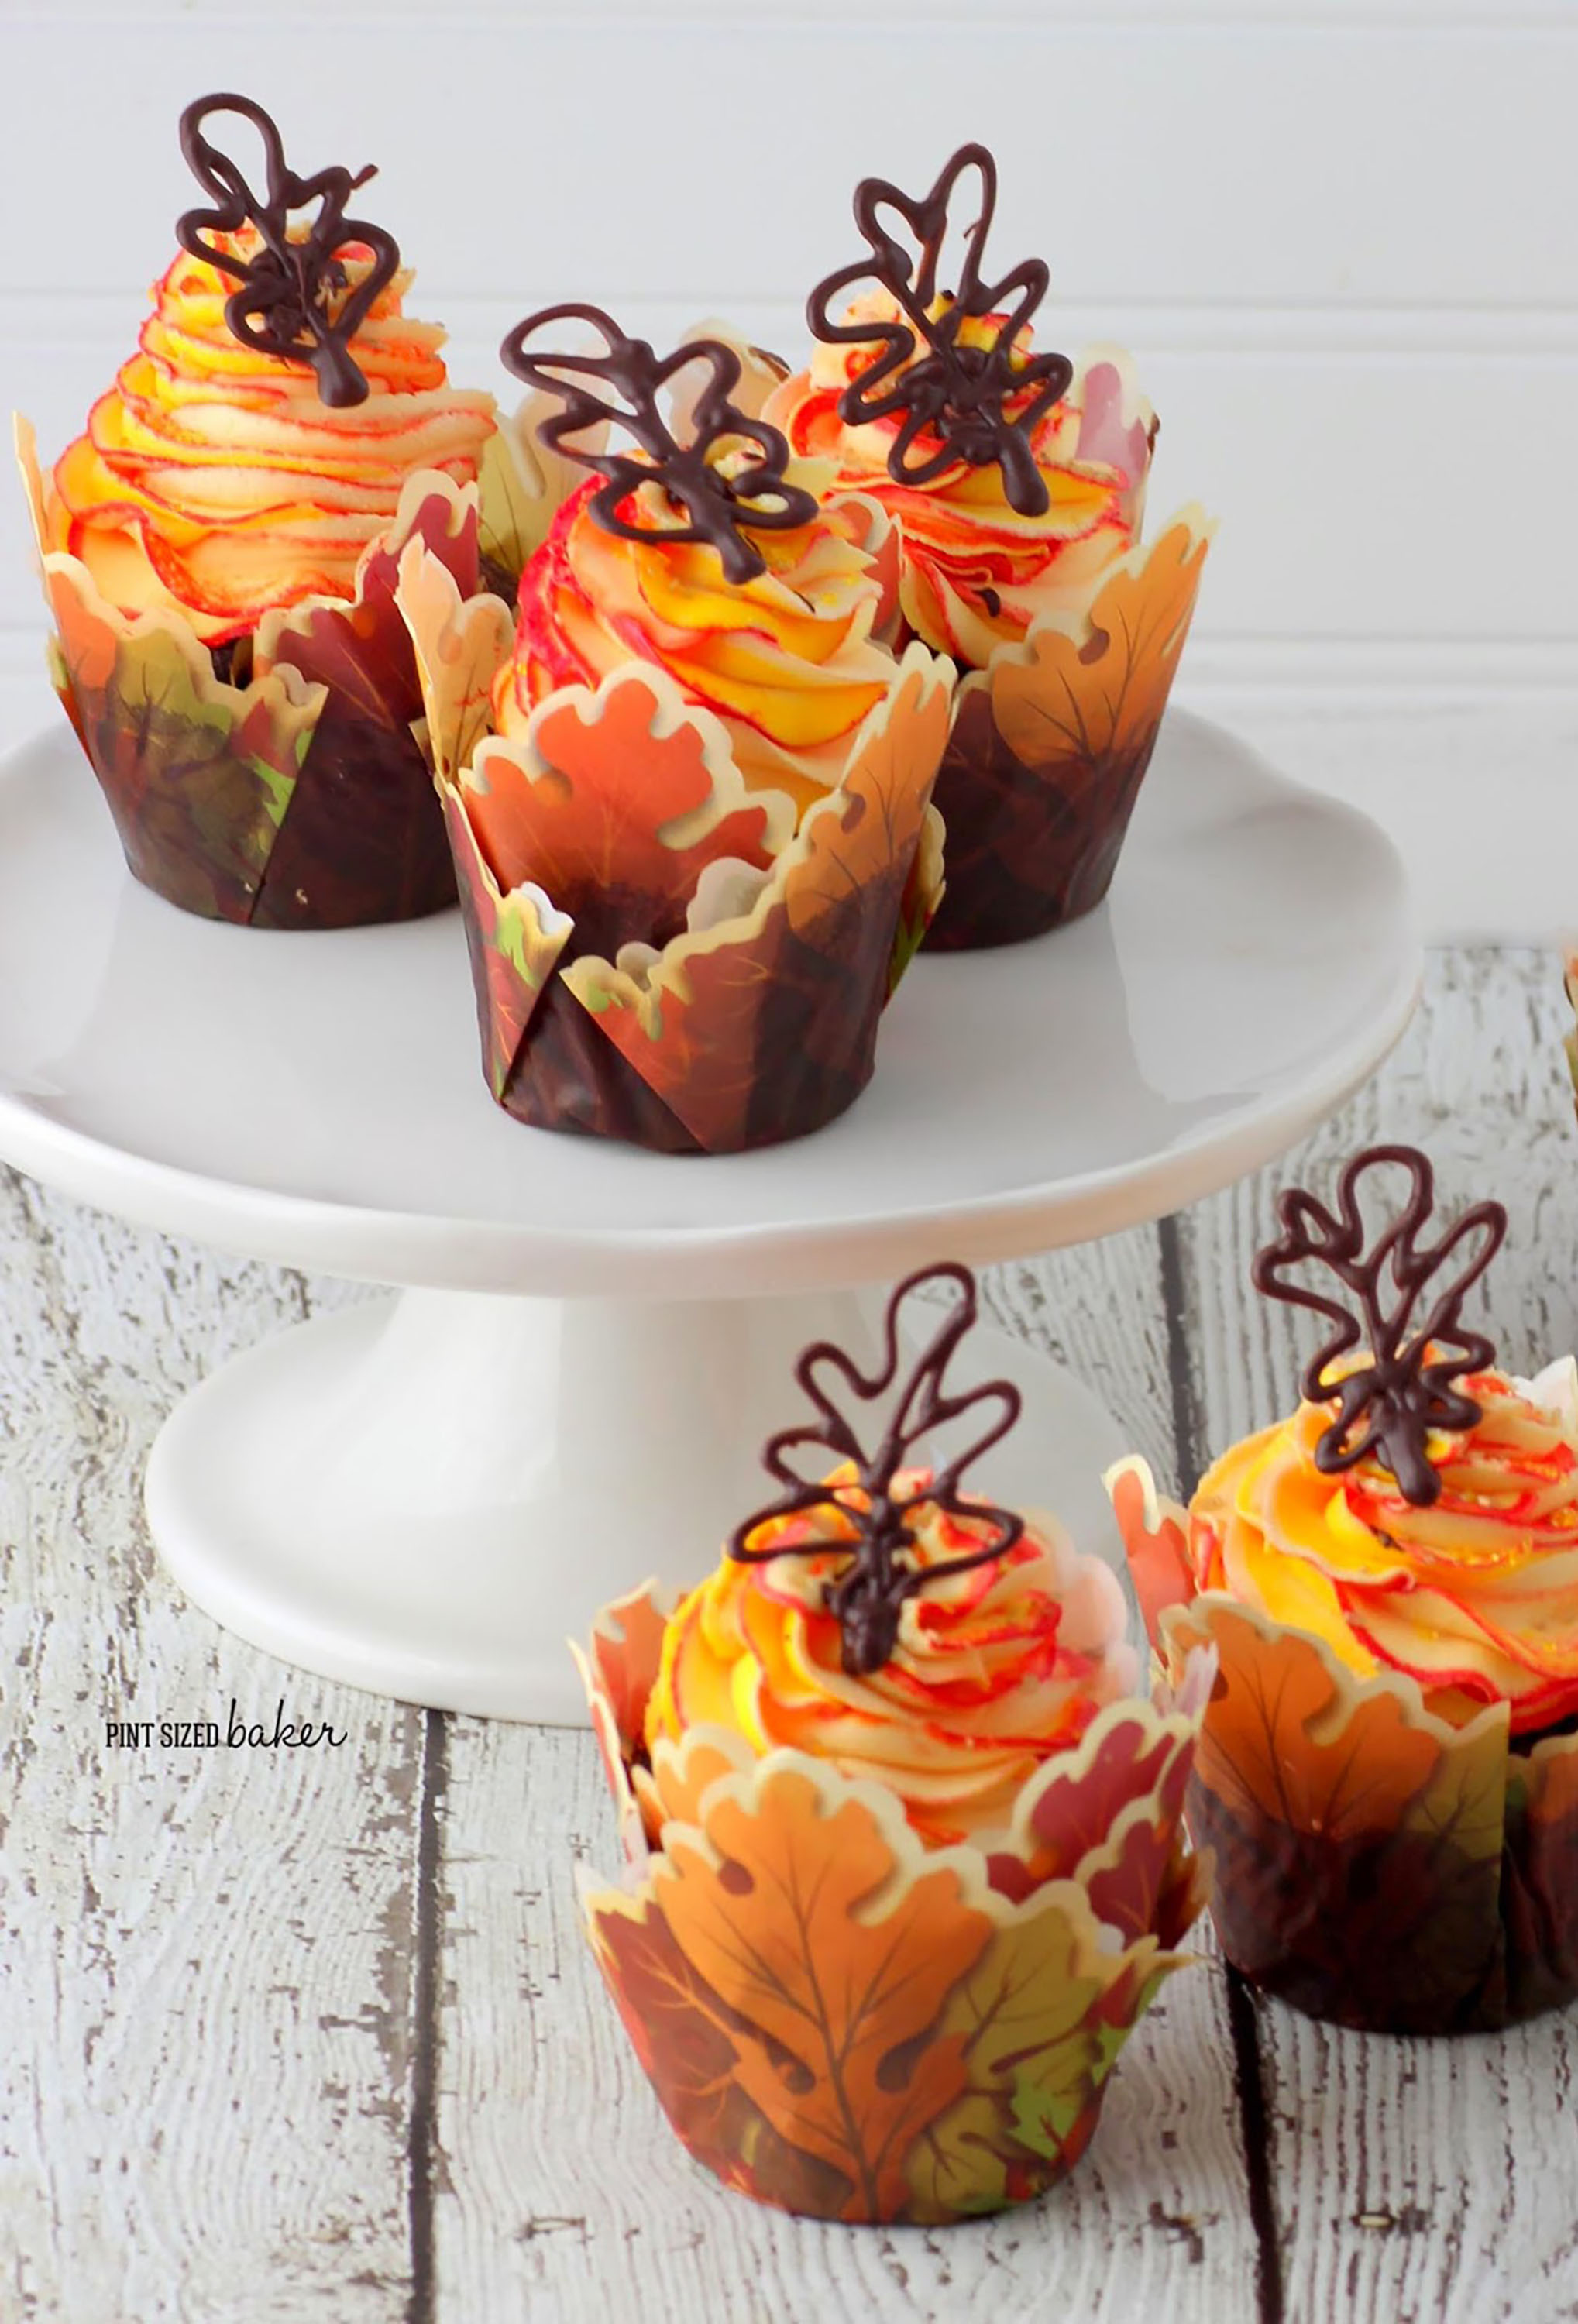 Fall Cupcake Decorations Part - 40: Best Fall Flavored Cupcakes And Decorating Ideas - Recipes For Easy Autumn  Cupcakes